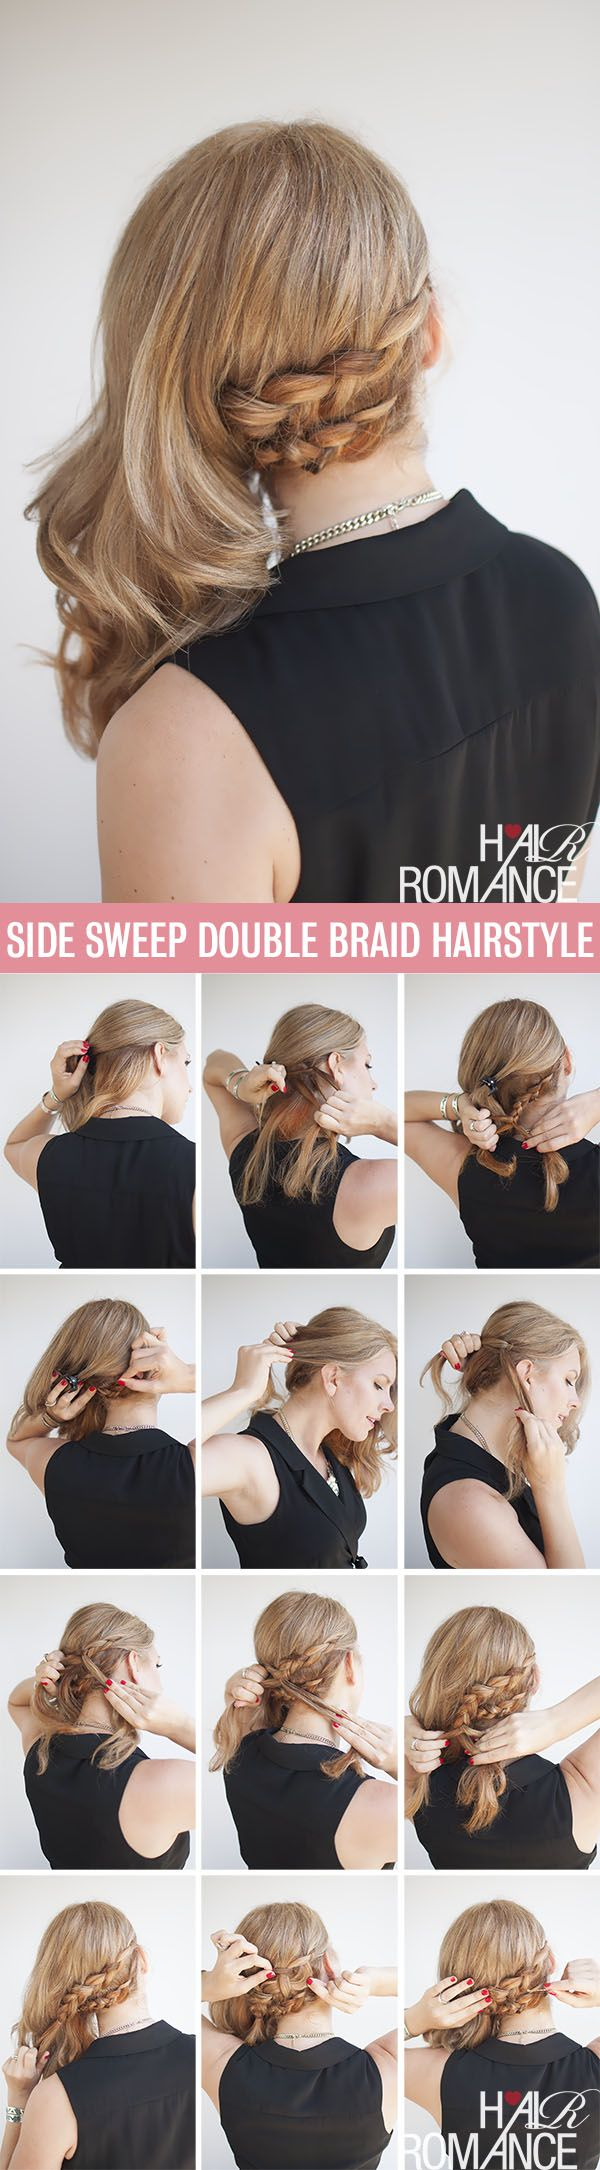 The compromise hairstyle – half up and half out braid tutorial